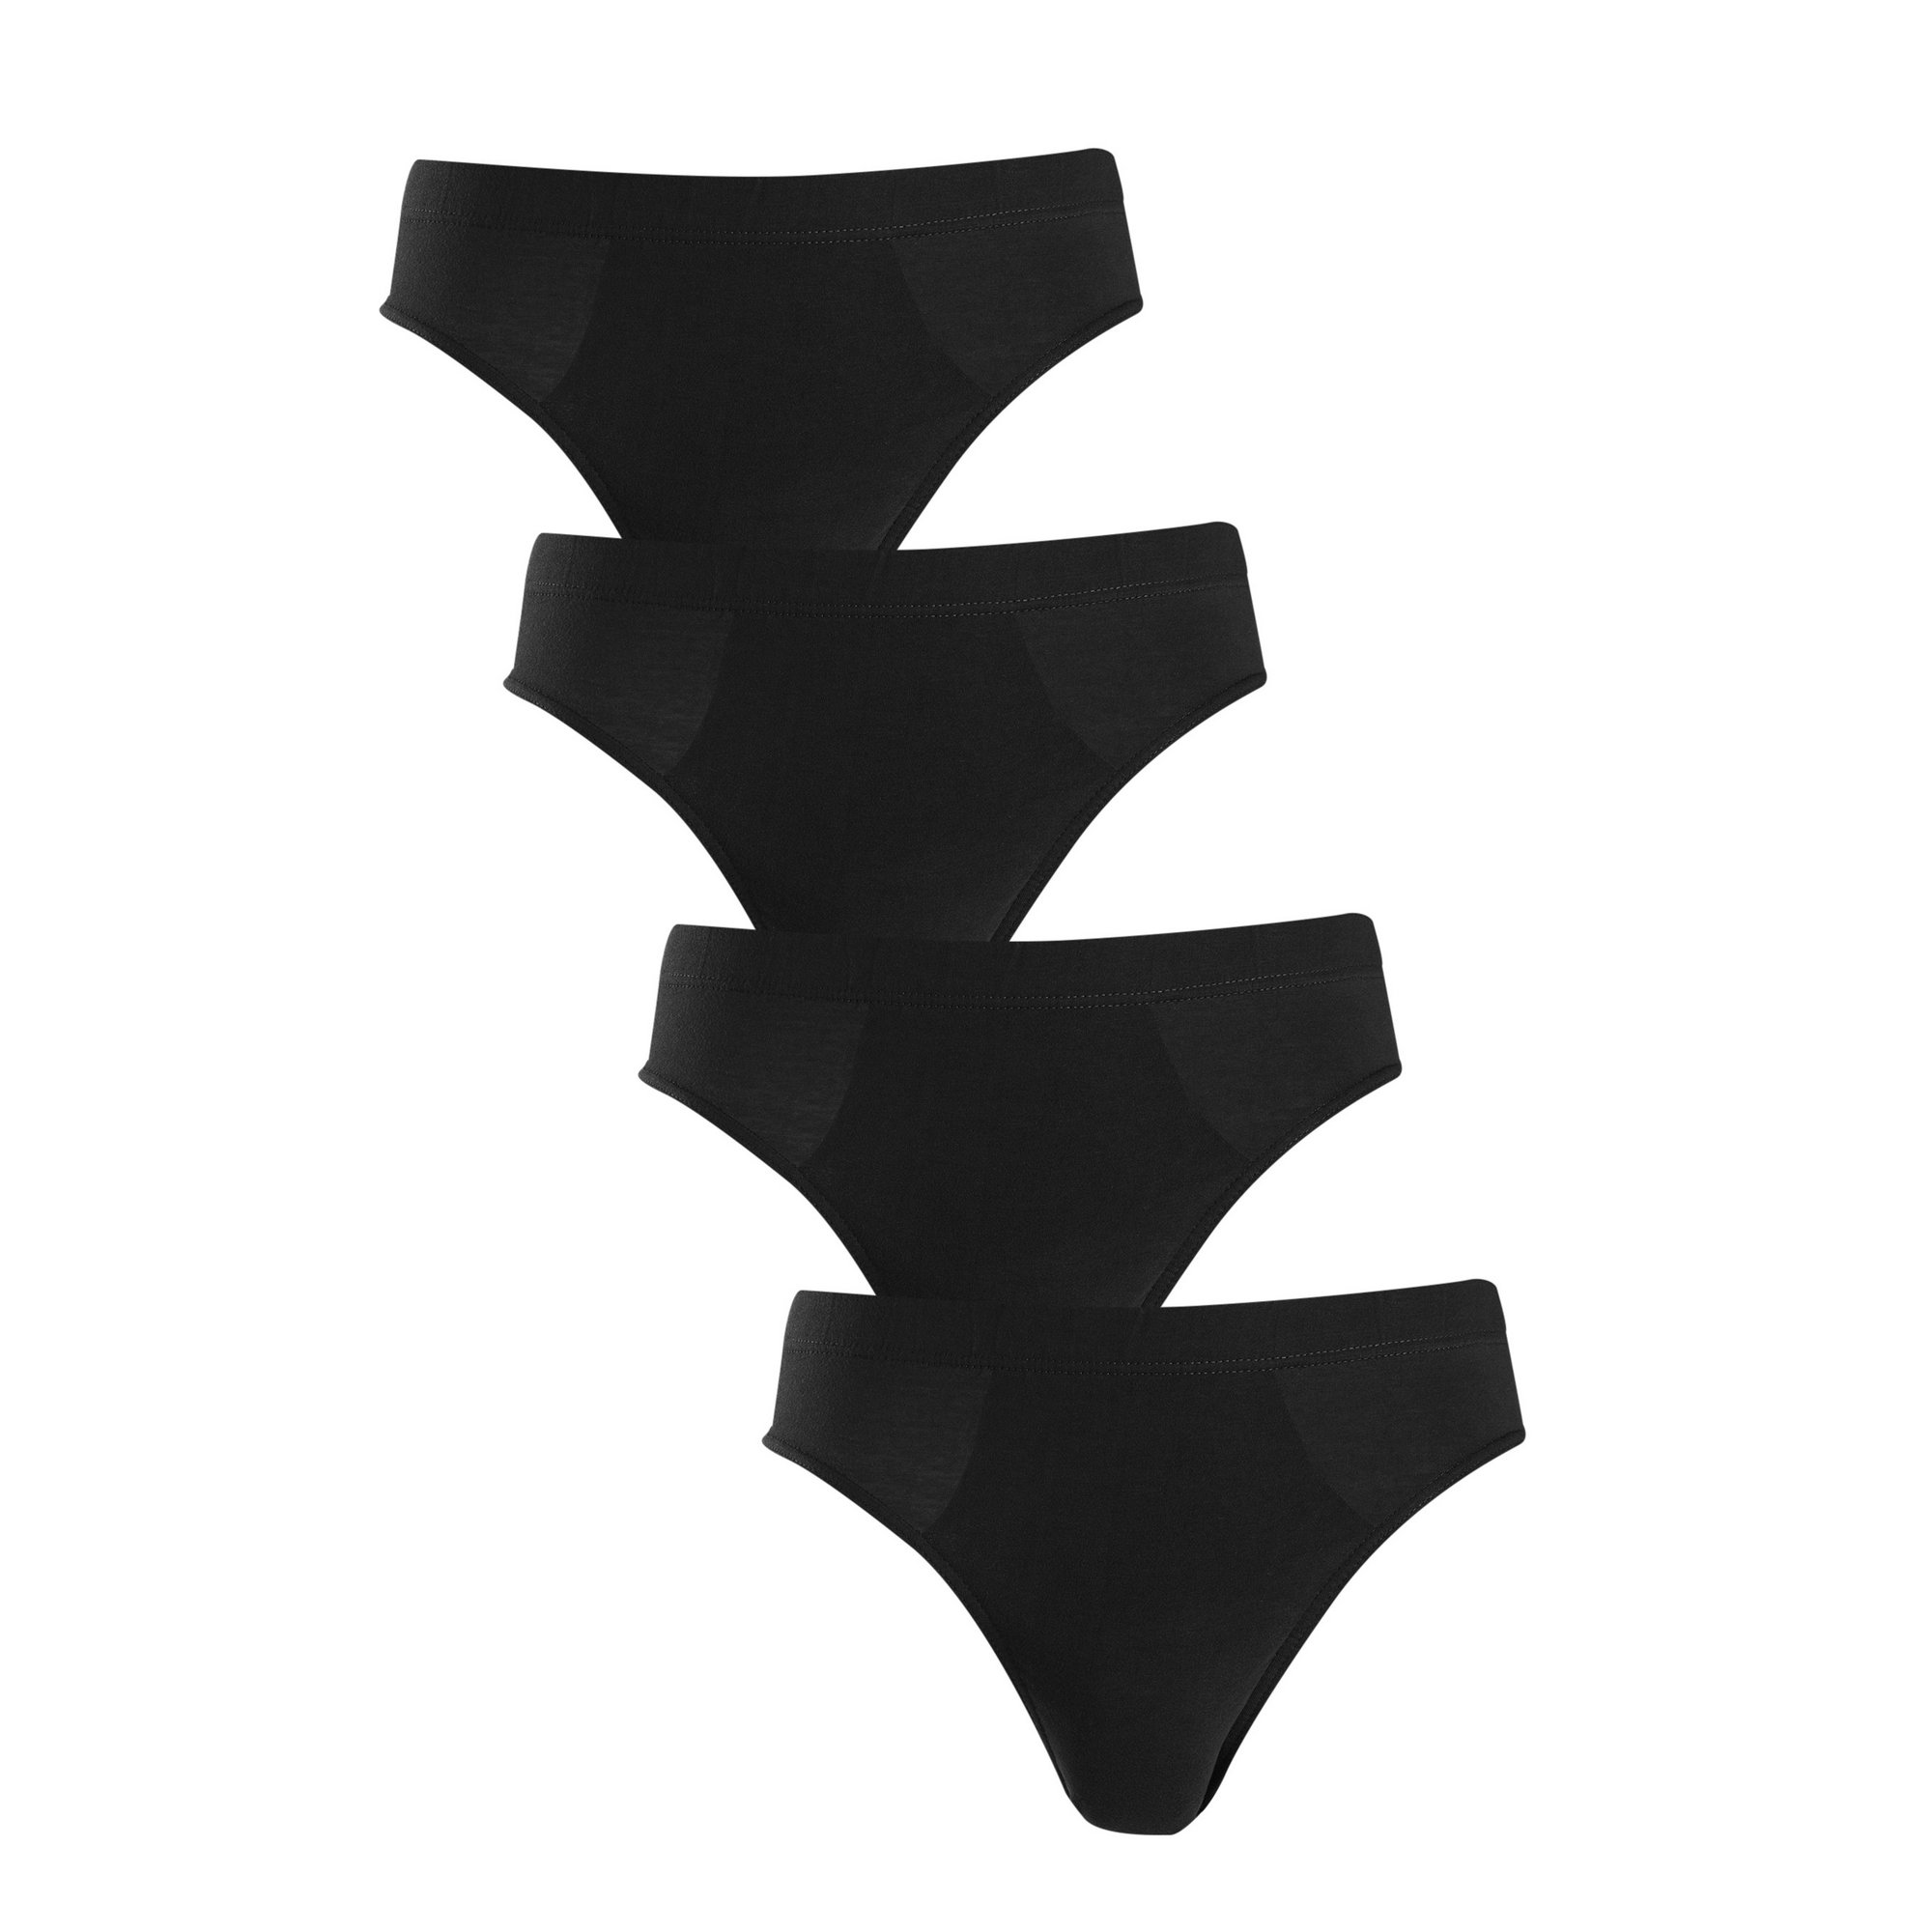 Image of Basic Pack of 4 Briefs